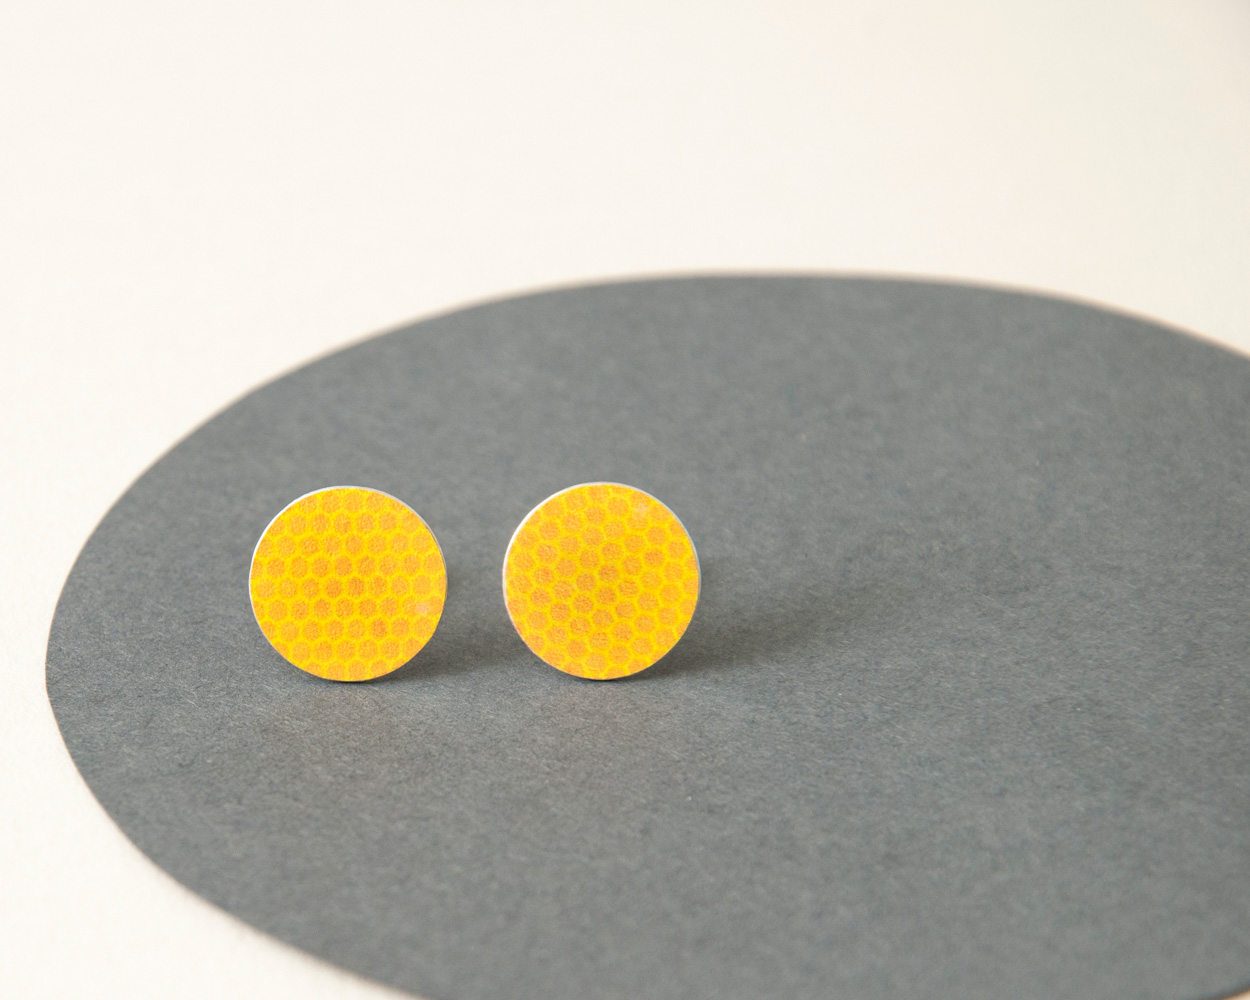 Yellow stud earrings